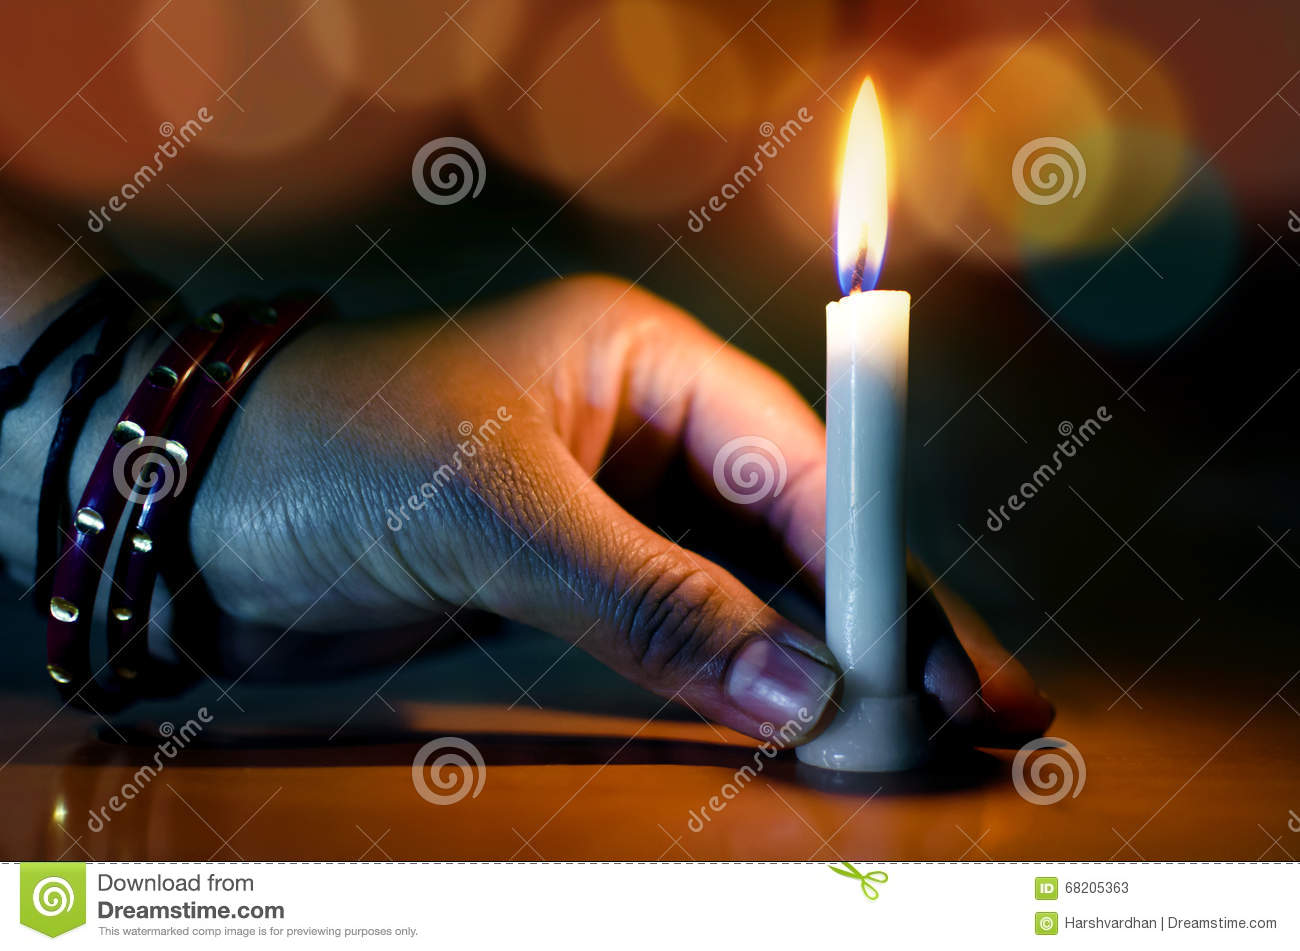 Hand Holding Candle In The Dark Night Bokeh Stock Image - Image ... for Holding Candle In The Dark  585ifm